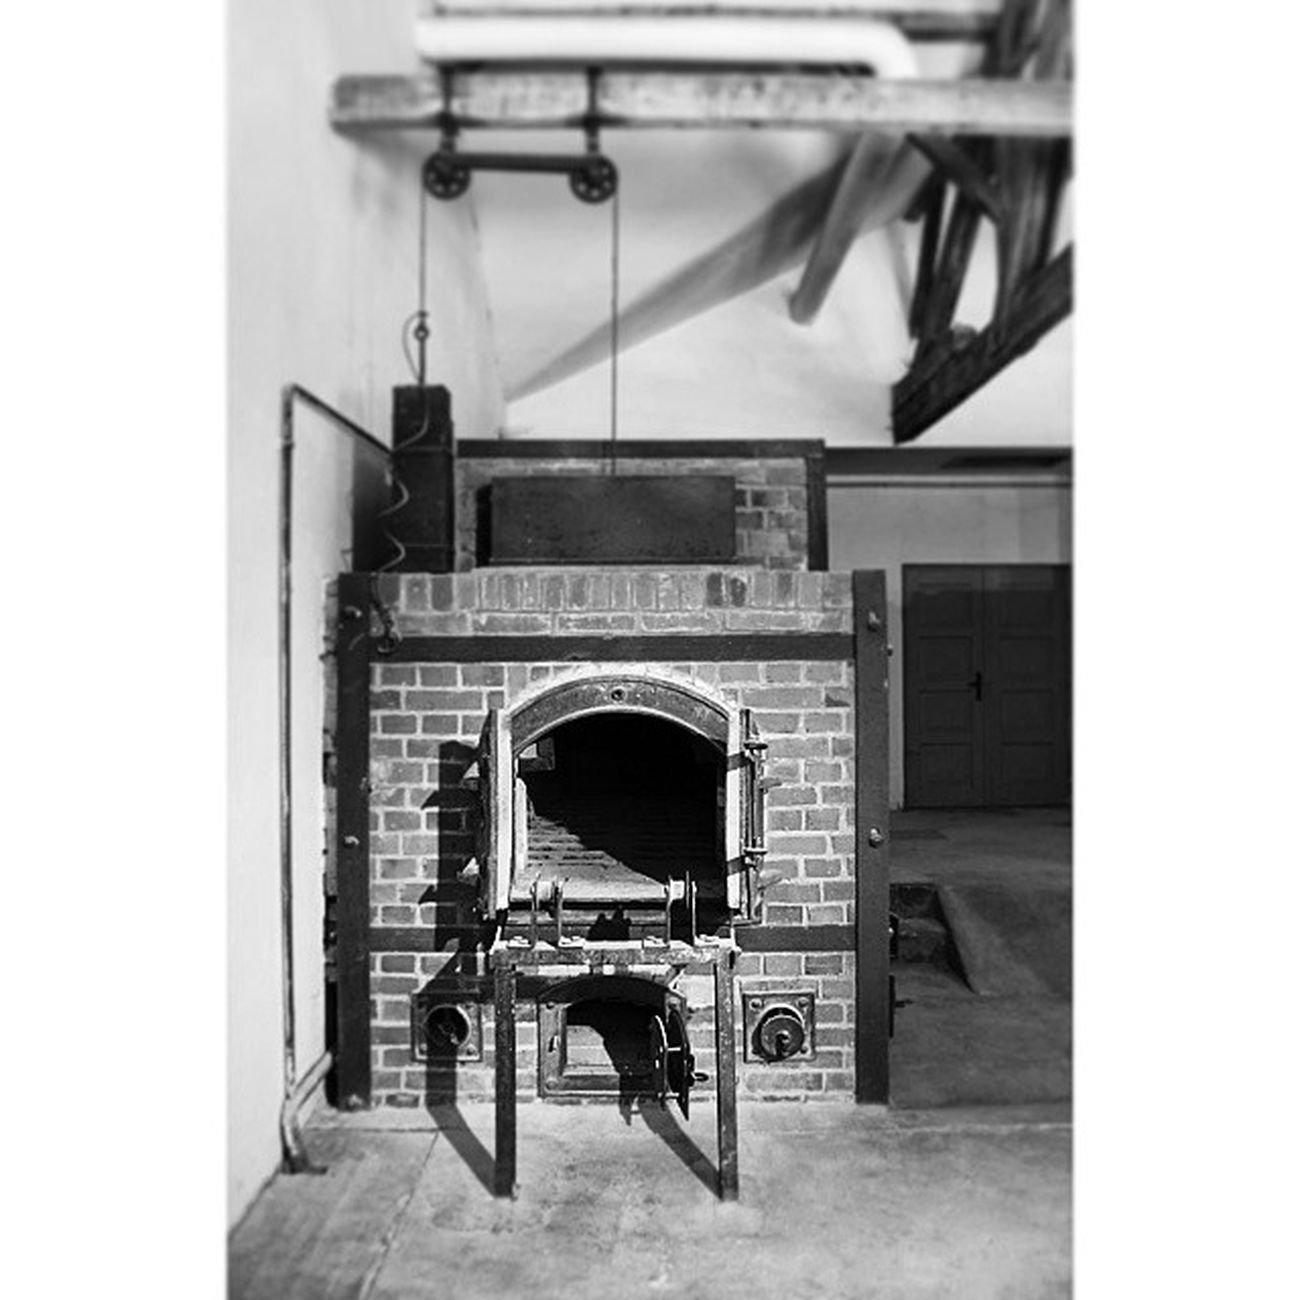 One of the Furnaces at the Crematorium Krematorium . Tour at the Dachau WW2 Concentration camp concentrationCamp. münchen munich, Germany Deutschland. Taken by my SonyAlpha dslr a57. معتقل معسكر محرقة ميونخ المانيا